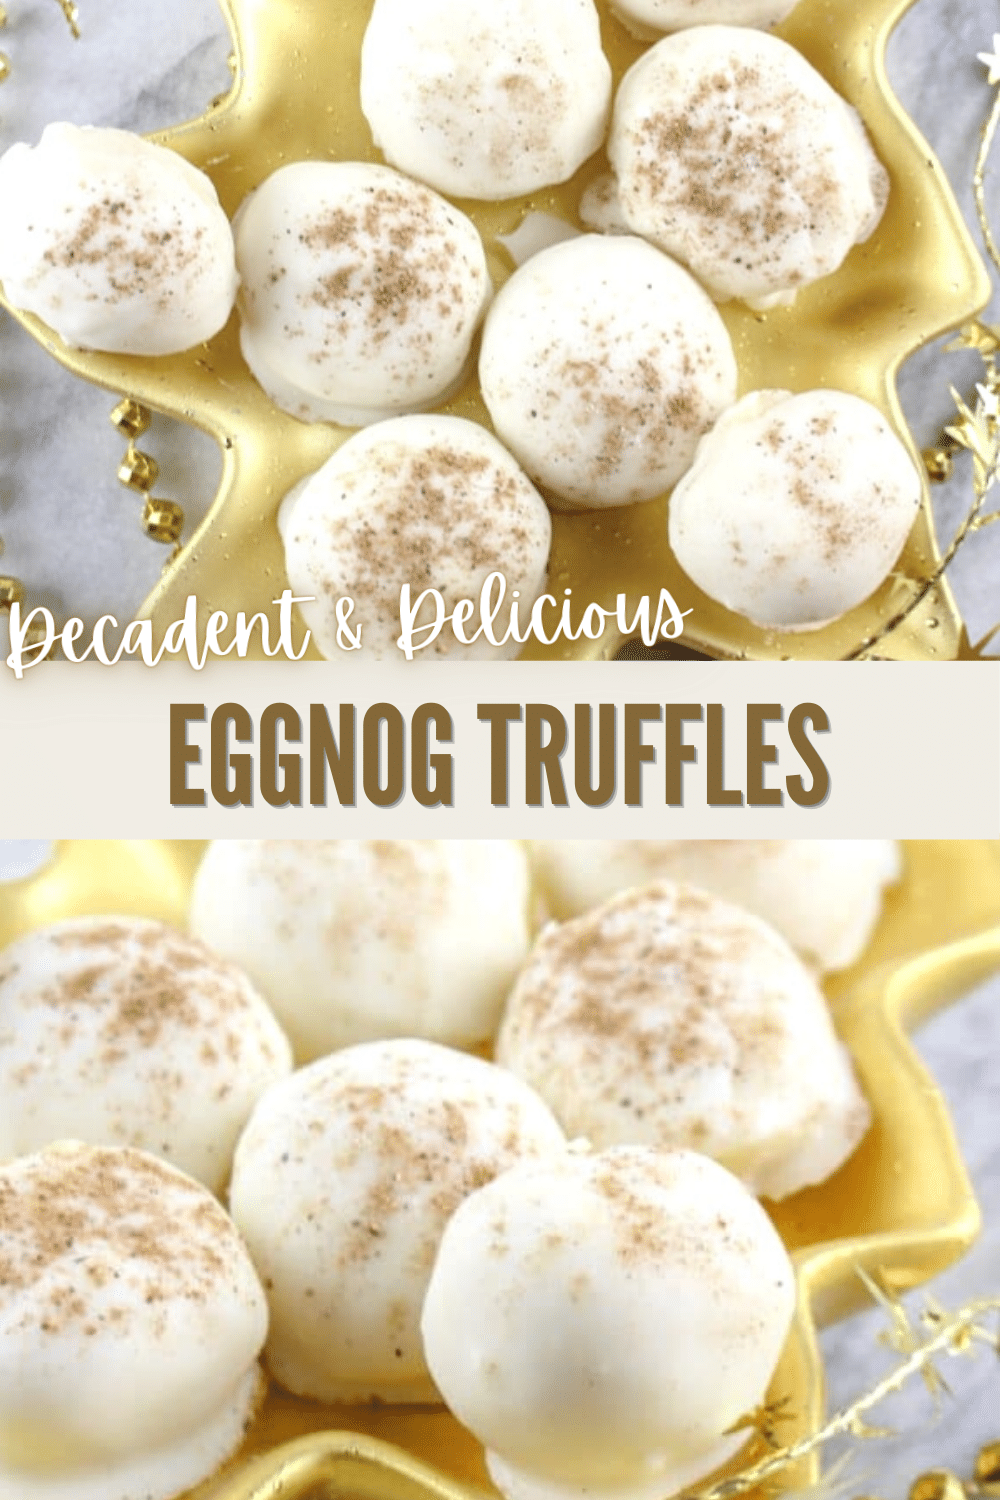 These eggnog truffles are so yummy and perfect for Christmas! Give them as a gift or serve at your holiday party. #Christmas #candy #eggnog via @wondermomwannab